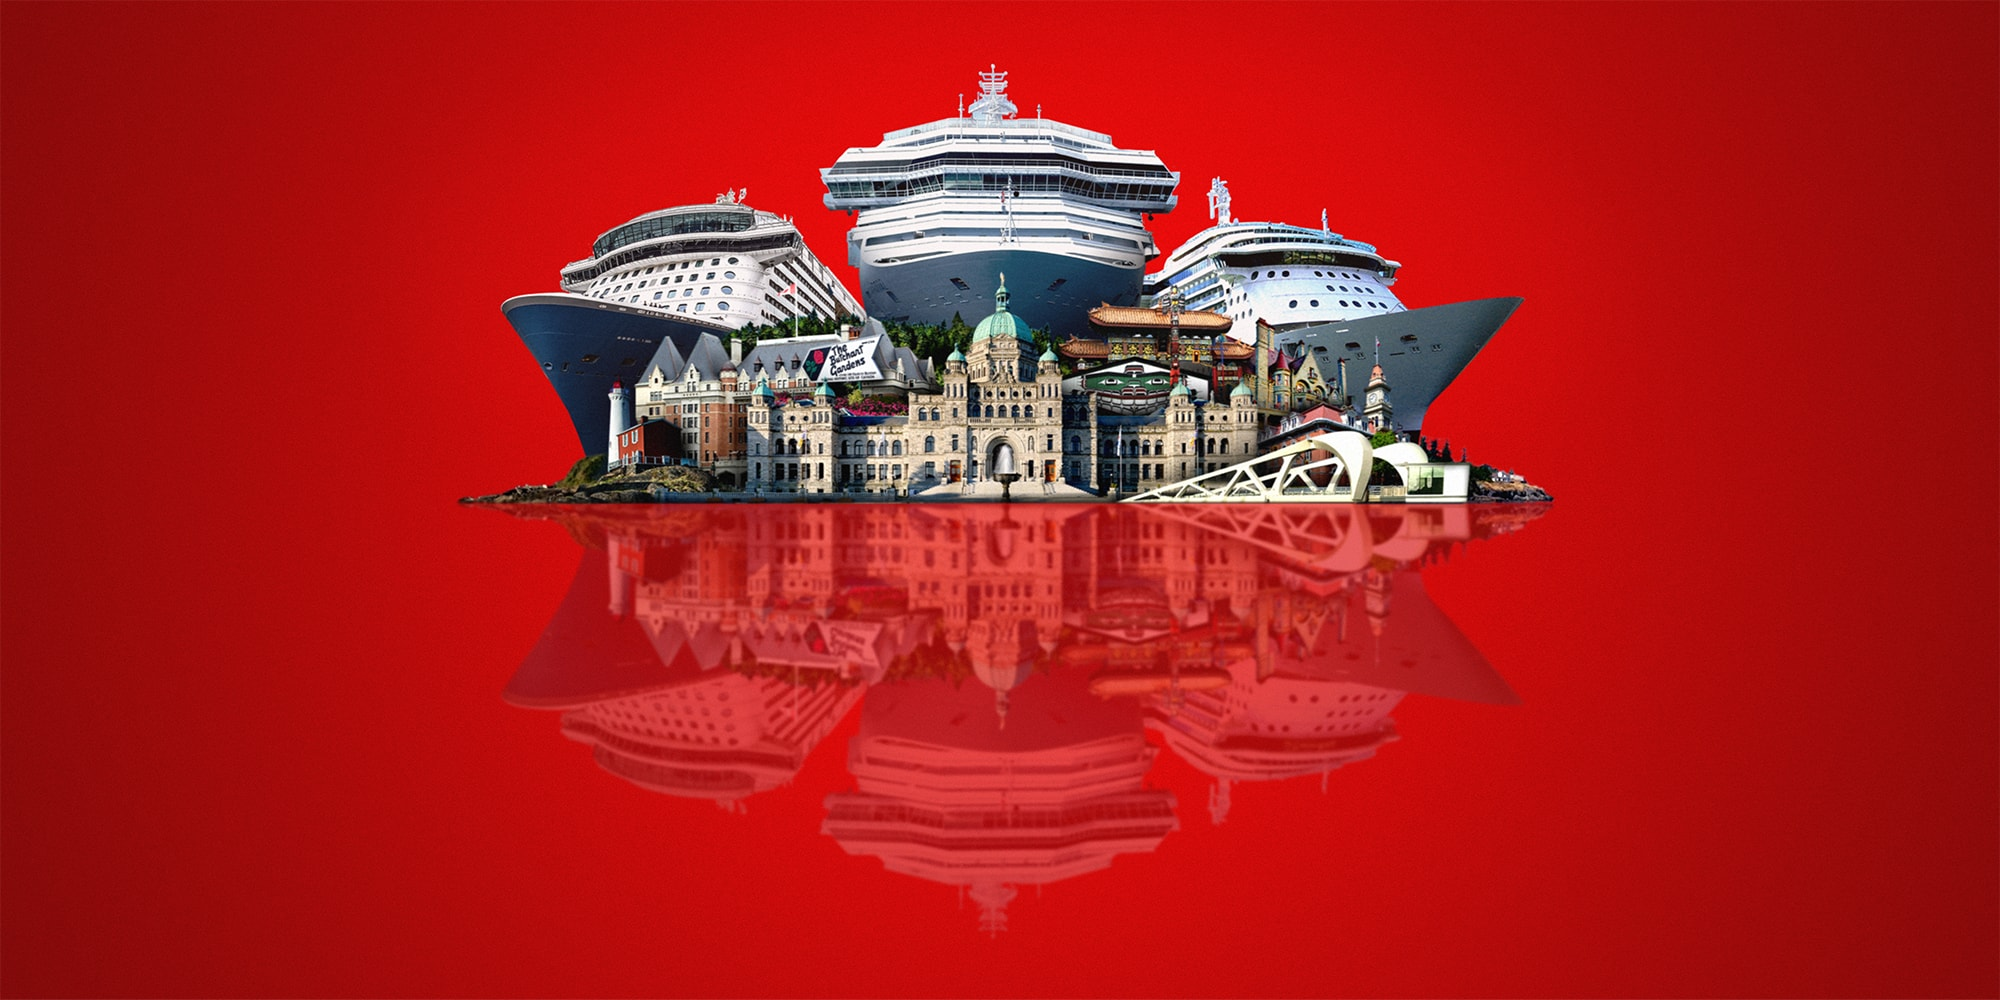 Victoria's Cruise Ship Conundrum